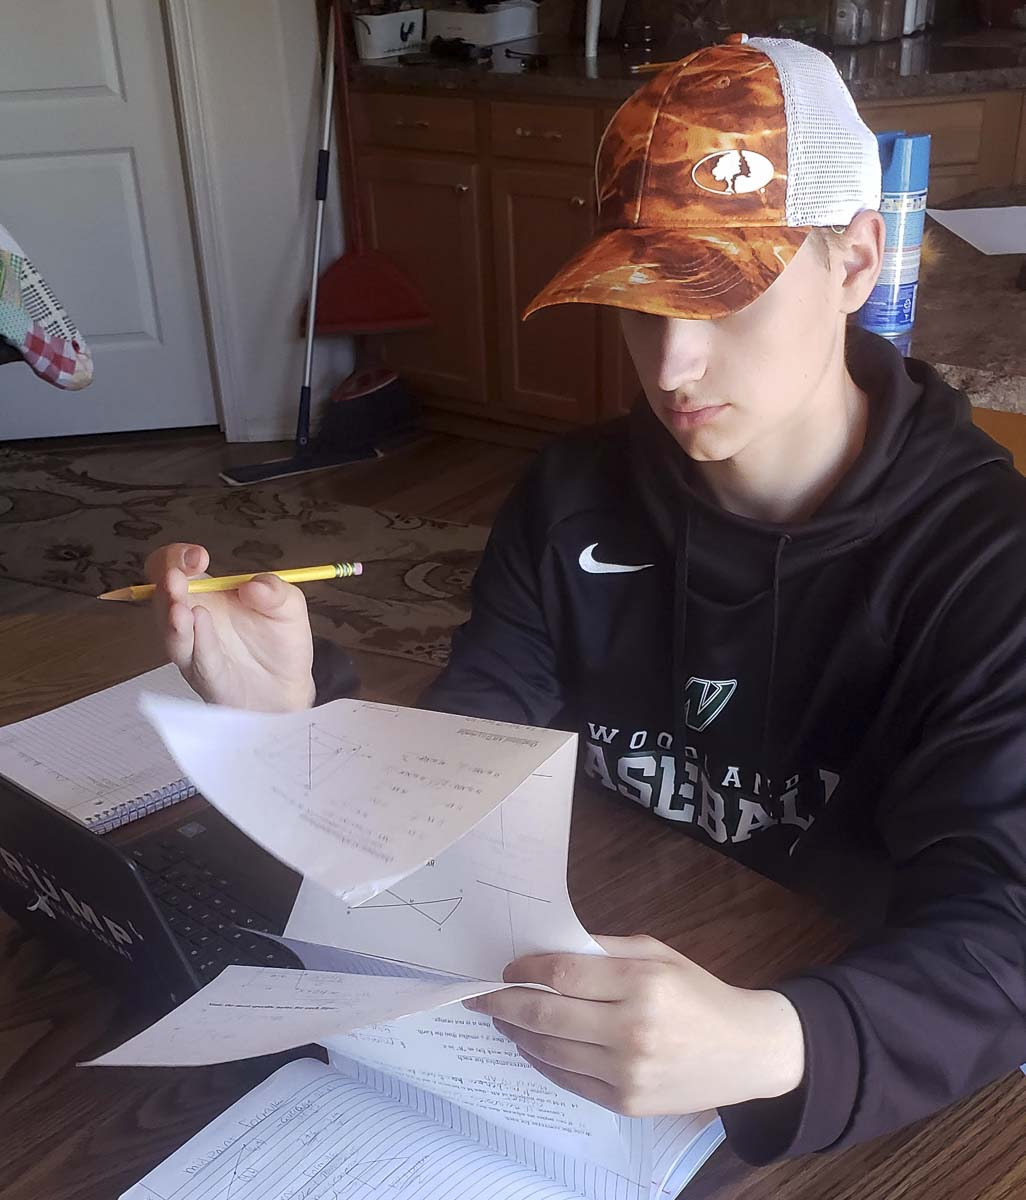 Colton Hall, a tenth grader at Woodland High School, works on a math test at home. Photo courtesy of Woodland Public Schools